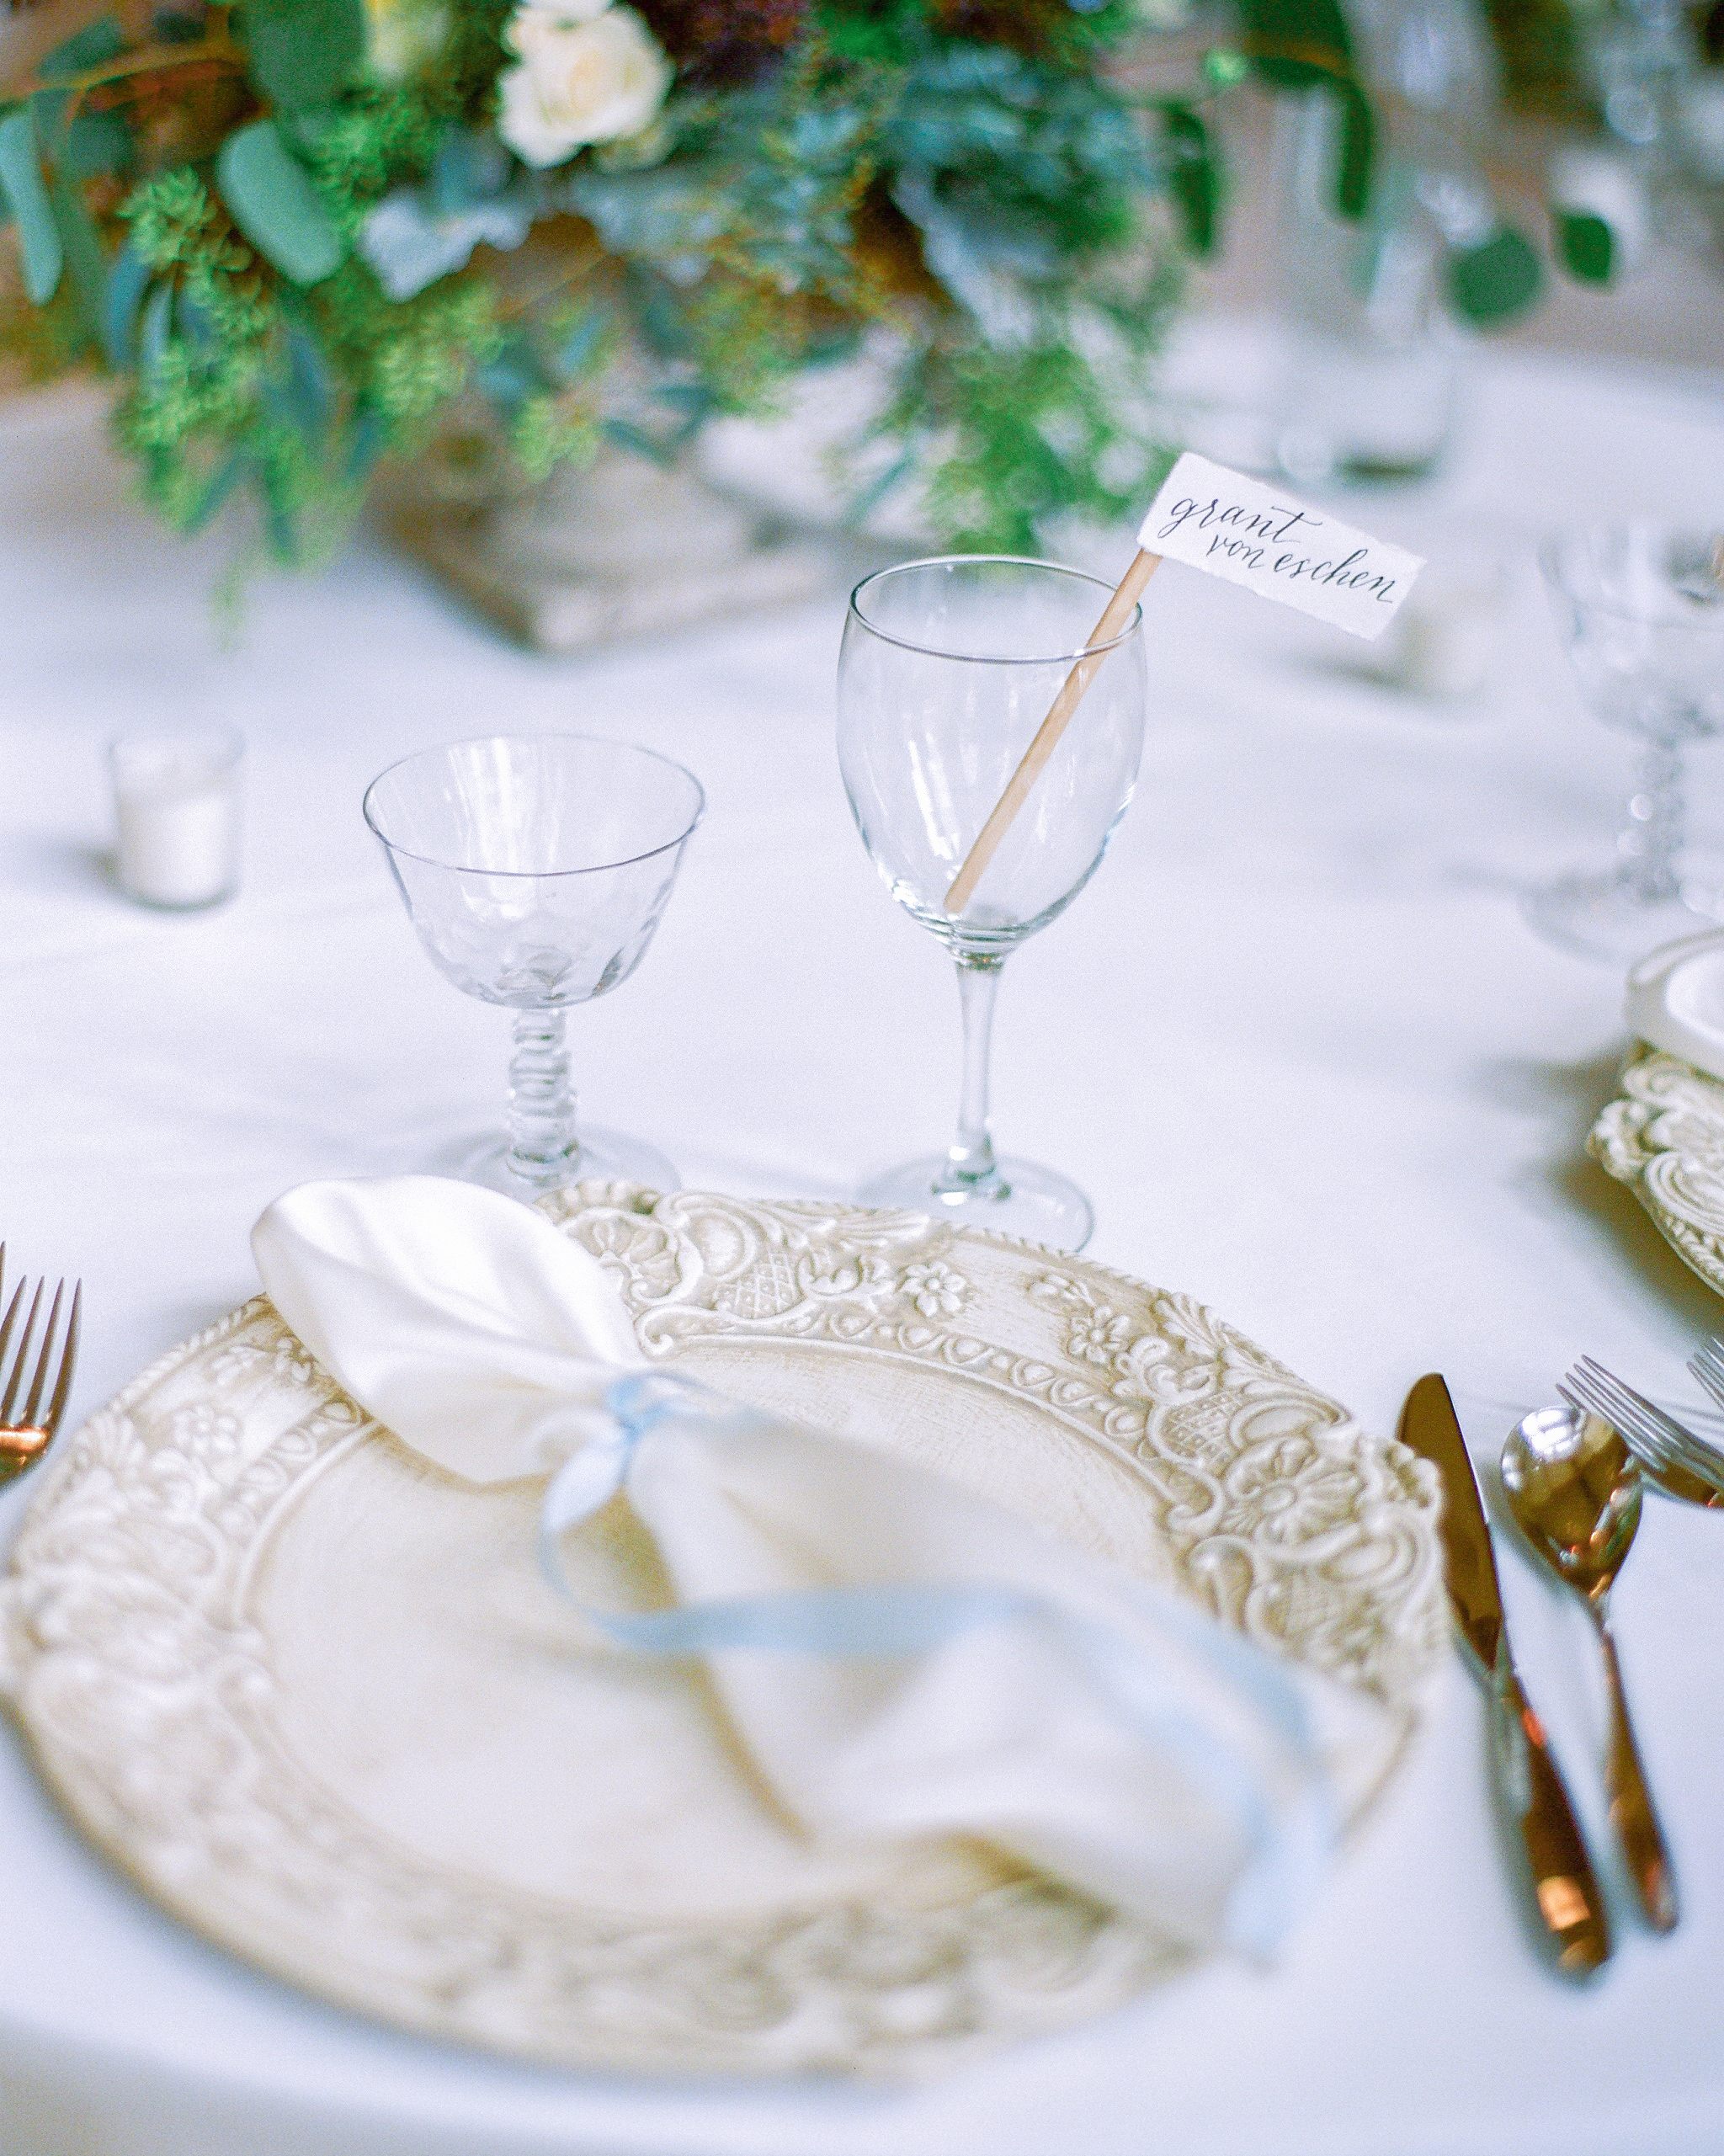 kendall-grant-wedding-placesetting-032-s112328-1215.jpg